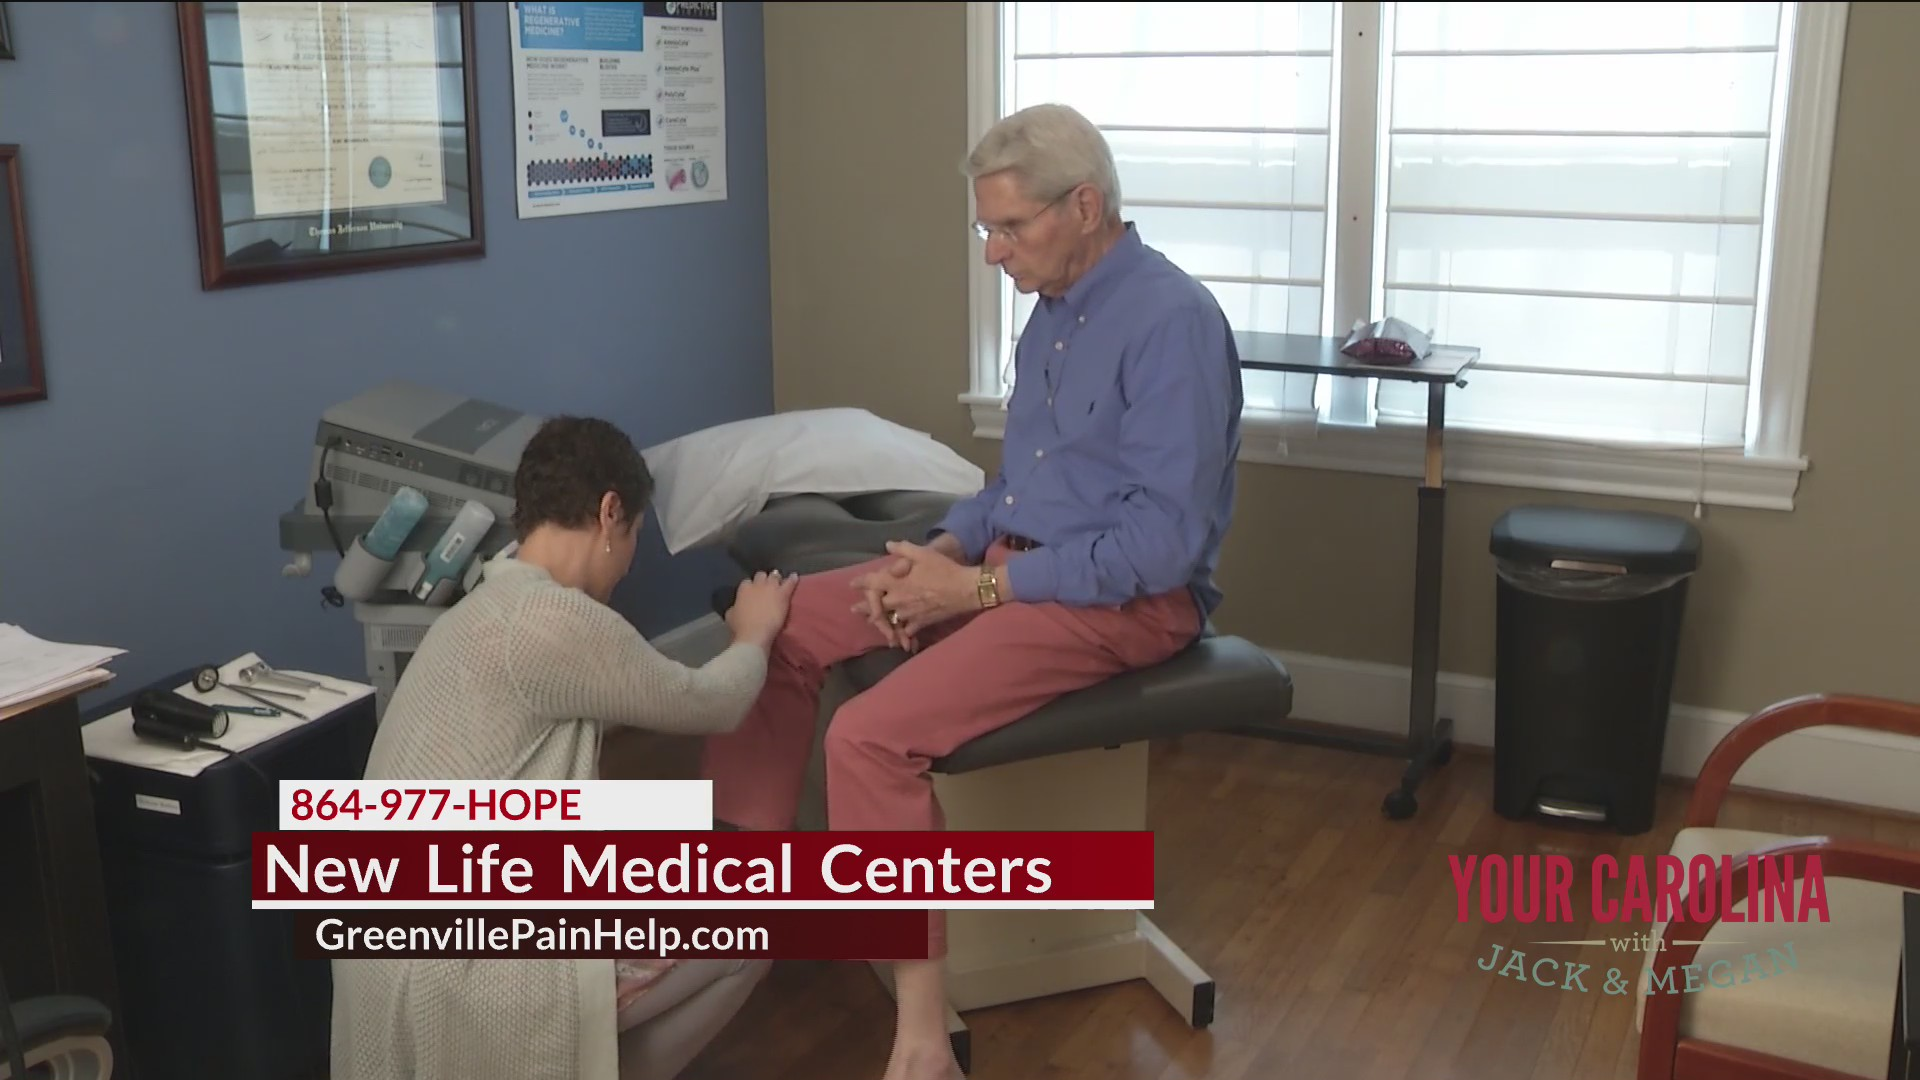 New Life Medical Centers Neuropathy Program Work To Improve Neuropathy Symptoms